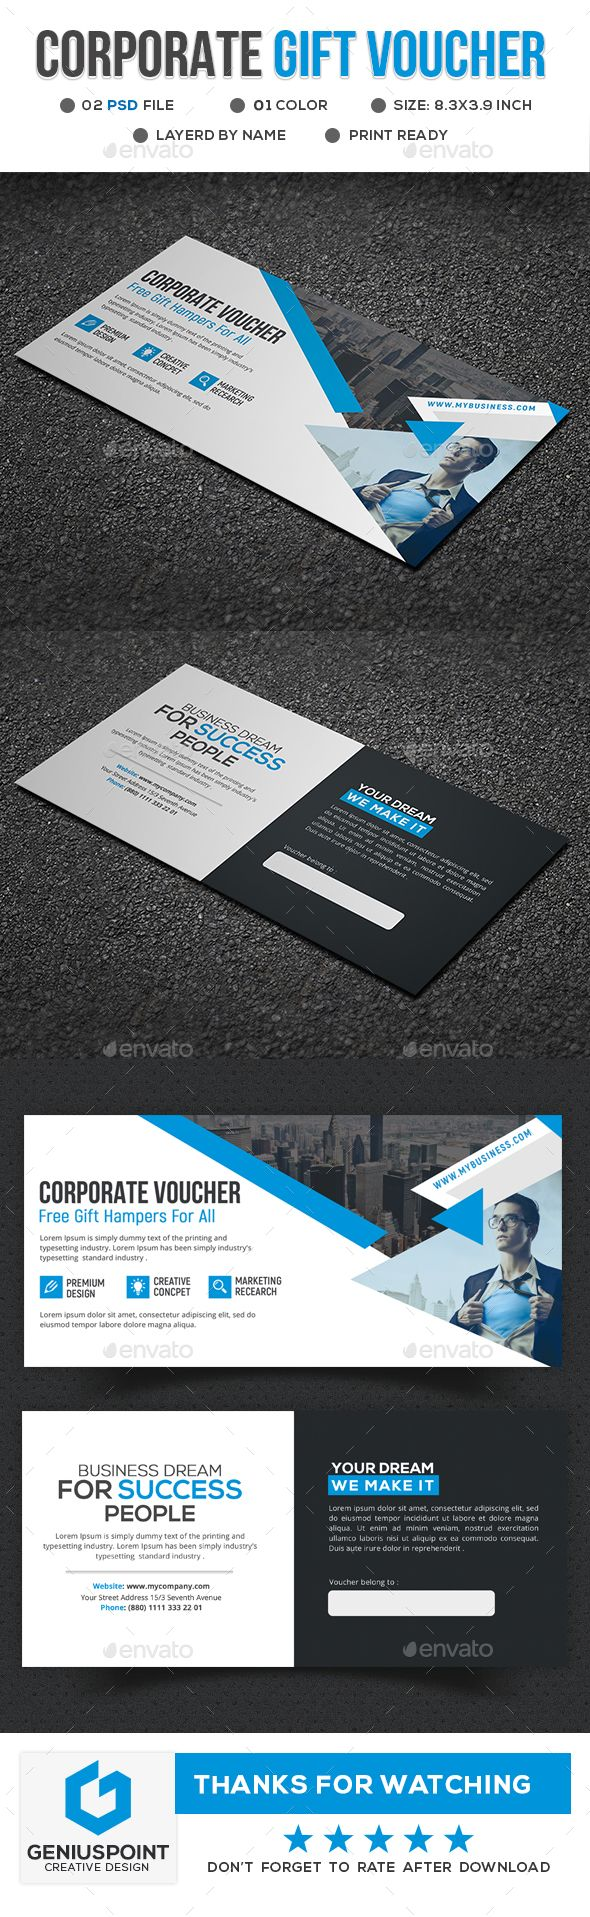 395 best gift voucher templates images on pinterest corporate gift voucher template psd yelopaper Images